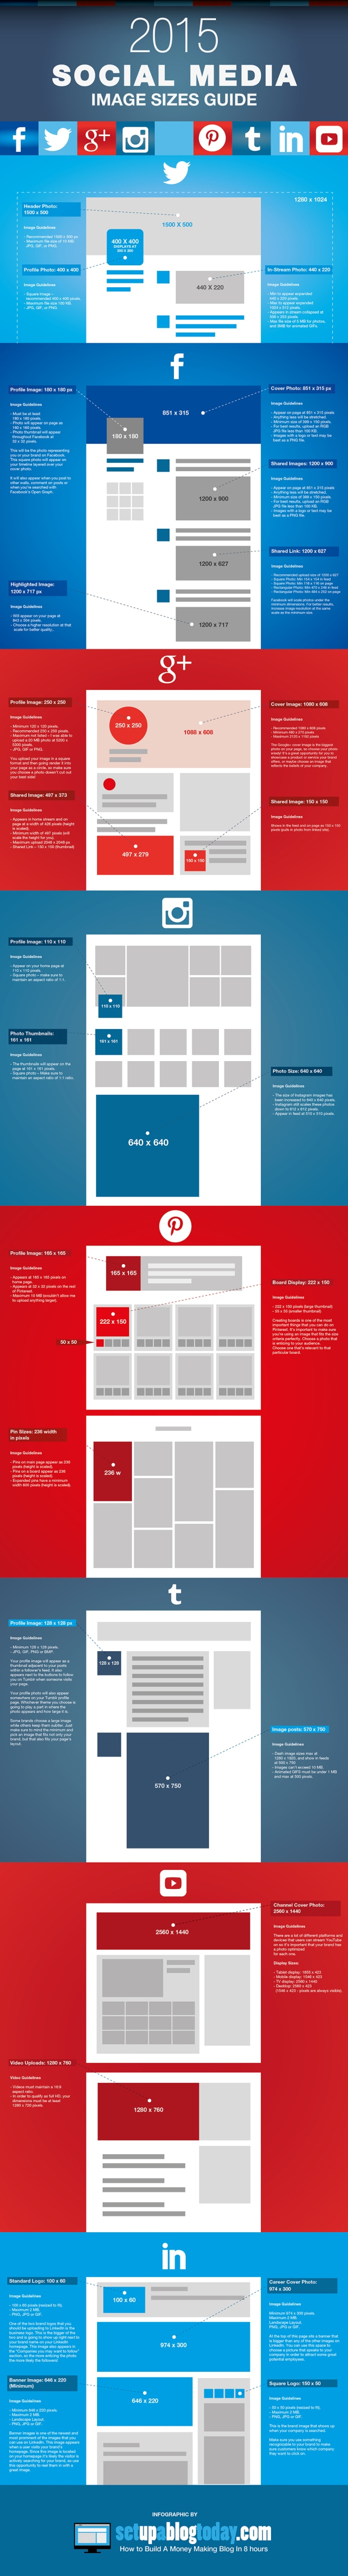 Social Media Image Sizes Cheat Sheet [INFOGRAPHIC]